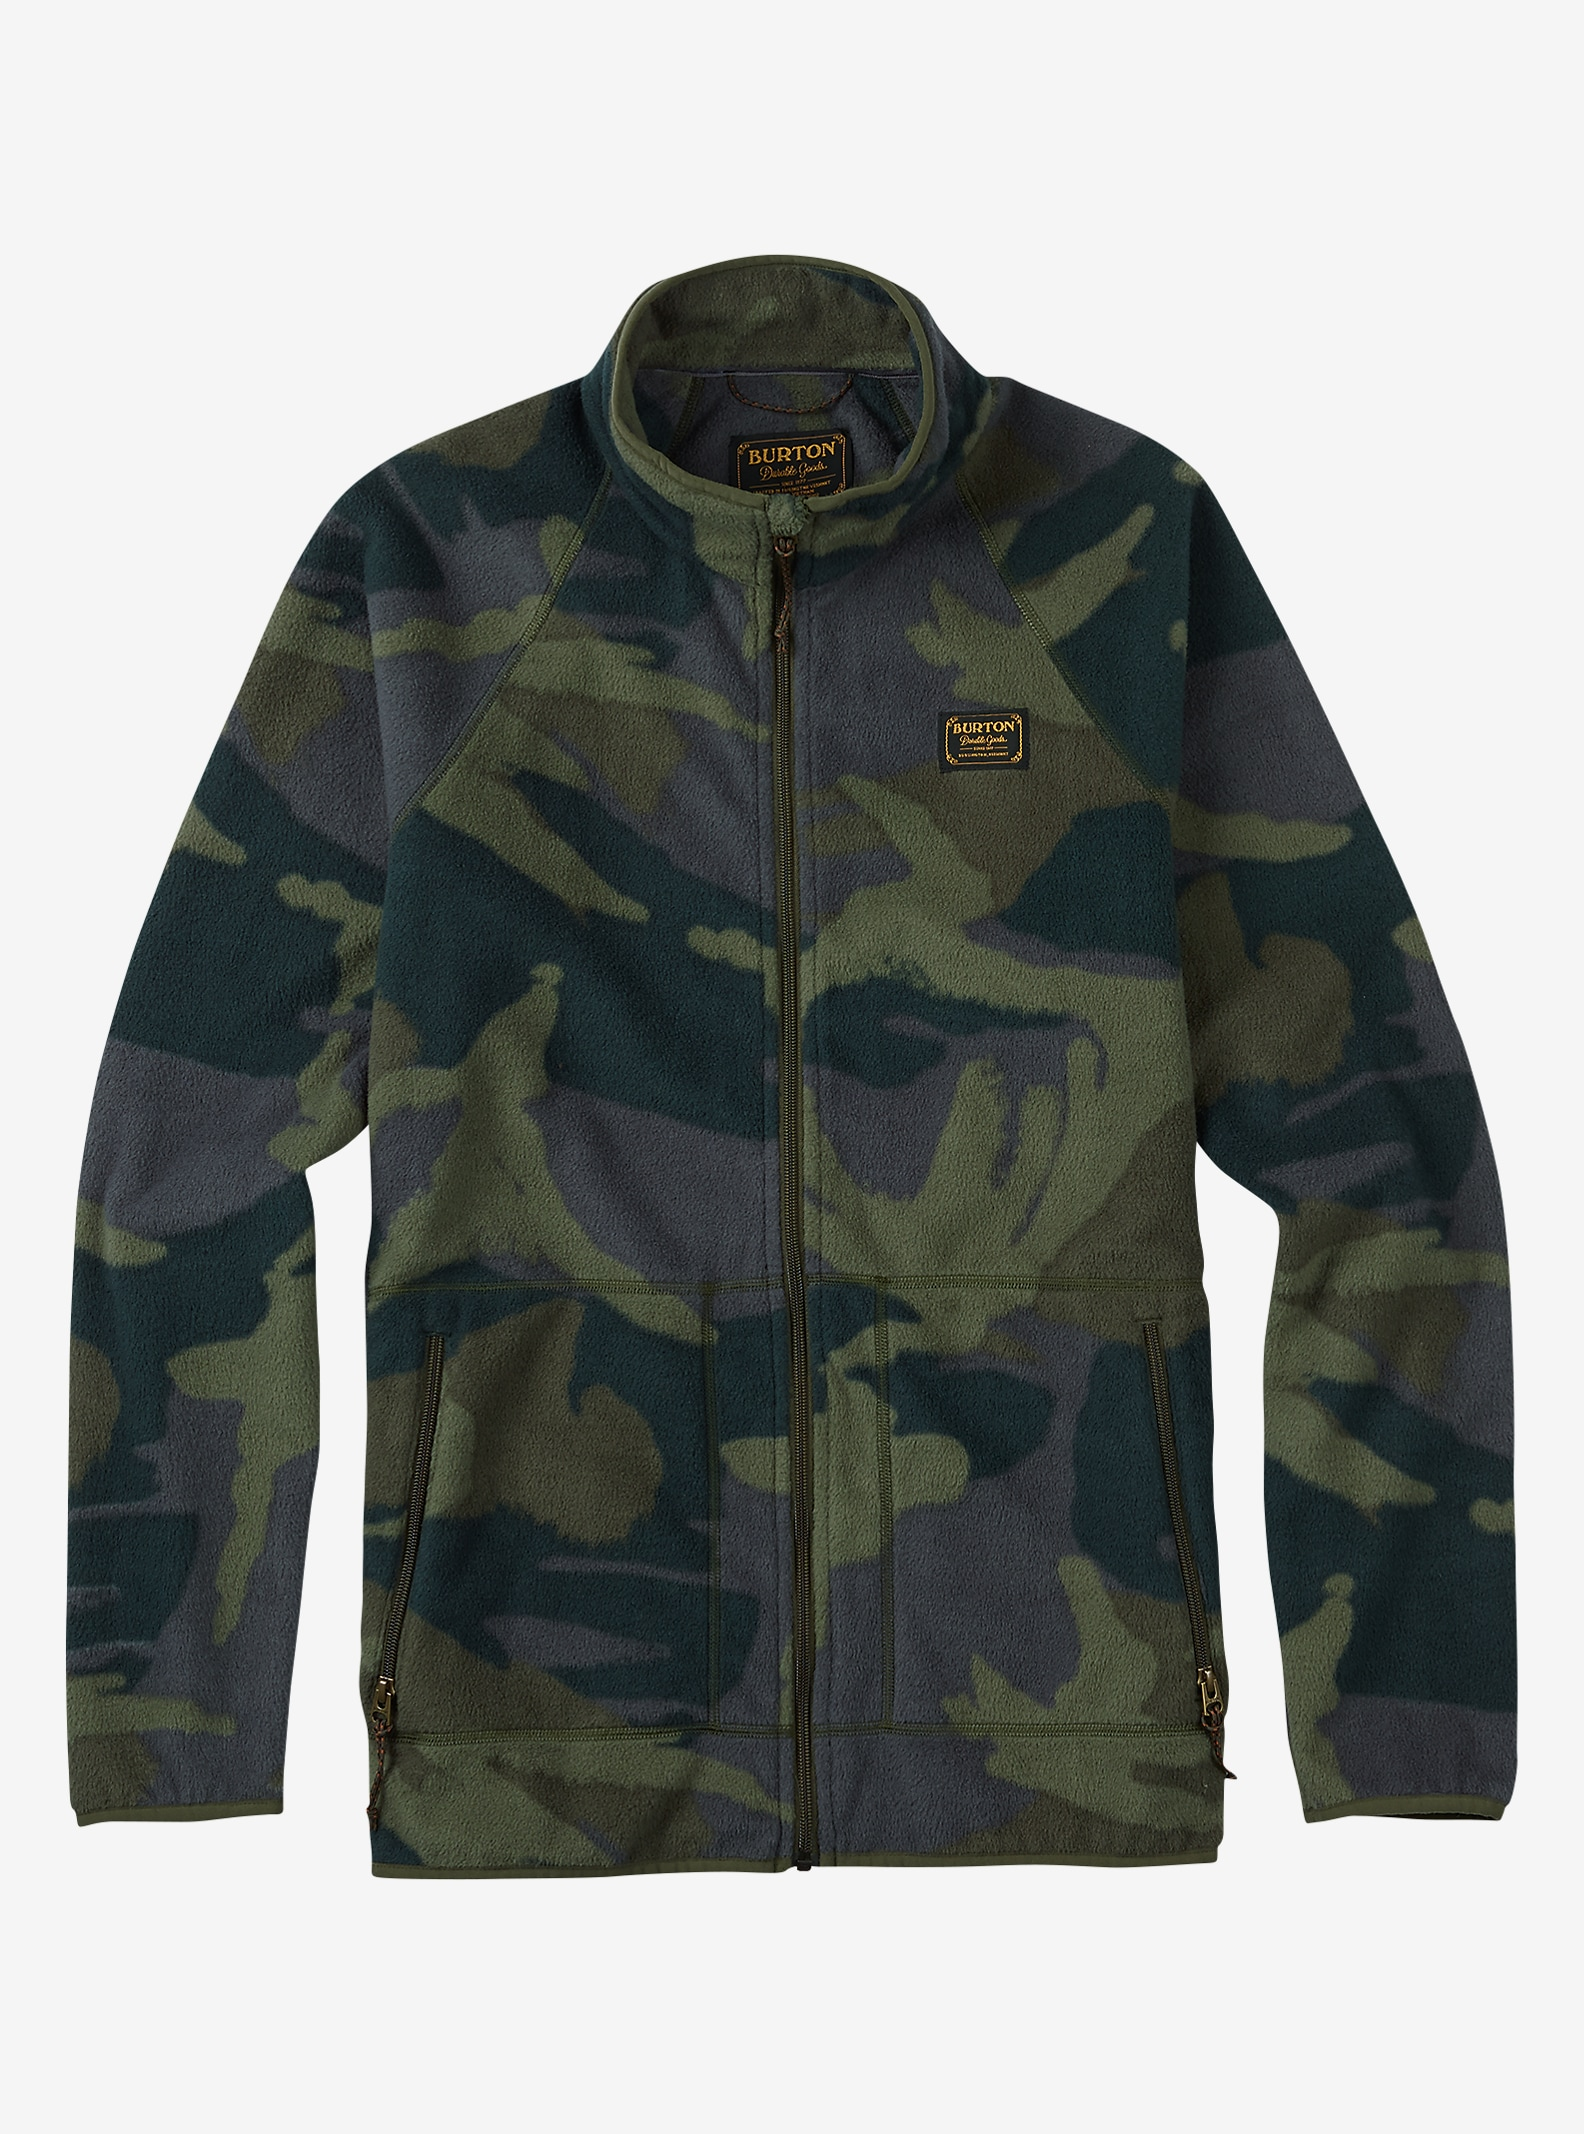 Burton Ember Full-Zip Fleece shown in Beetle Derby Camo